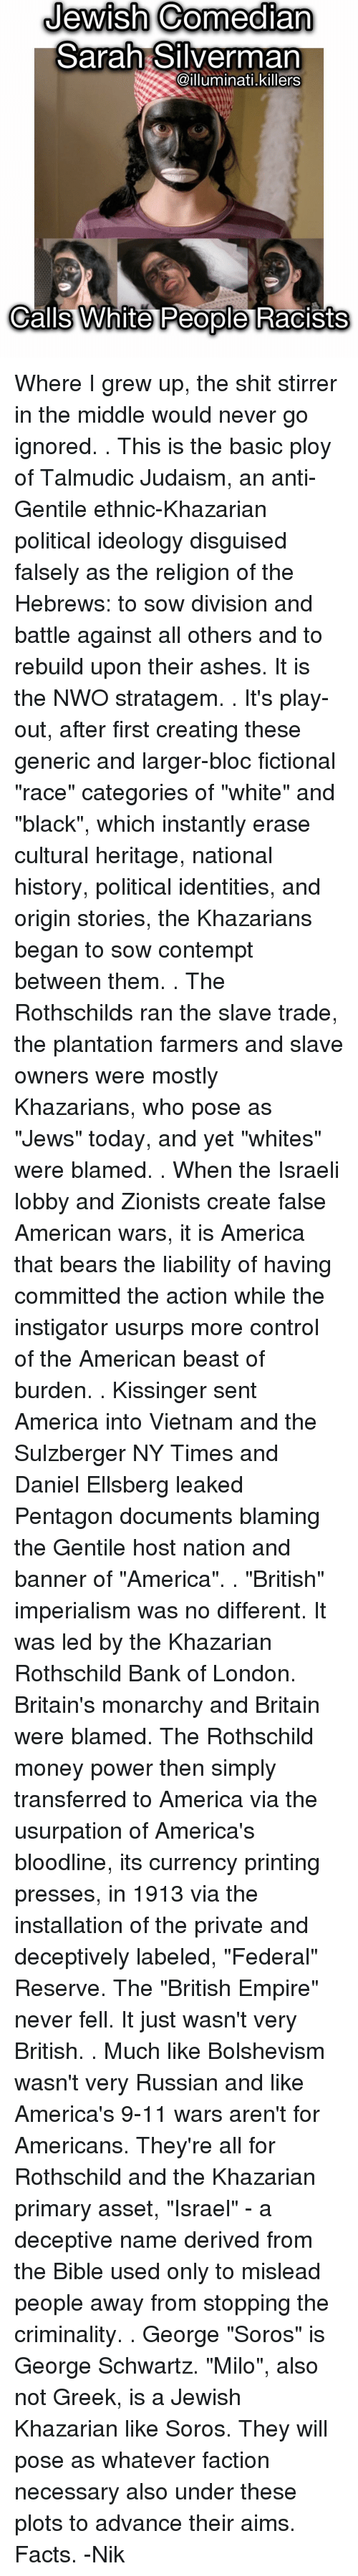 """rothschild bank: Jewish Comedian  Sarah Silverman  @illuminati killers  Calls White People Racists Where I grew up, the shit stirrer in the middle would never go ignored. . This is the basic ploy of Talmudic Judaism, an anti-Gentile ethnic-Khazarian political ideology disguised falsely as the religion of the Hebrews: to sow division and battle against all others and to rebuild upon their ashes. It is the NWO stratagem. . It's play-out, after first creating these generic and larger-bloc fictional """"race"""" categories of """"white"""" and """"black"""", which instantly erase cultural heritage, national history, political identities, and origin stories, the Khazarians began to sow contempt between them. . The Rothschilds ran the slave trade, the plantation farmers and slave owners were mostly Khazarians, who pose as """"Jews"""" today, and yet """"whites"""" were blamed. . When the Israeli lobby and Zionists create false American wars, it is America that bears the liability of having committed the action while the instigator usurps more control of the American beast of burden. . Kissinger sent America into Vietnam and the Sulzberger NY Times and Daniel Ellsberg leaked Pentagon documents blaming the Gentile host nation and banner of """"America"""". . """"British"""" imperialism was no different. It was led by the Khazarian Rothschild Bank of London. Britain's monarchy and Britain were blamed. The Rothschild money power then simply transferred to America via the usurpation of America's bloodline, its currency printing presses, in 1913 via the installation of the private and deceptively labeled, """"Federal"""" Reserve. The """"British Empire"""" never fell. It just wasn't very British. . Much like Bolshevism wasn't very Russian and like America's 9-11 wars aren't for Americans. They're all for Rothschild and the Khazarian primary asset, """"Israel"""" - a deceptive name derived from the Bible used only to mislead people away from stopping the criminality. . George """"Soros"""" is George Schwartz. """"Milo"""", also not Greek, is a Jewis"""